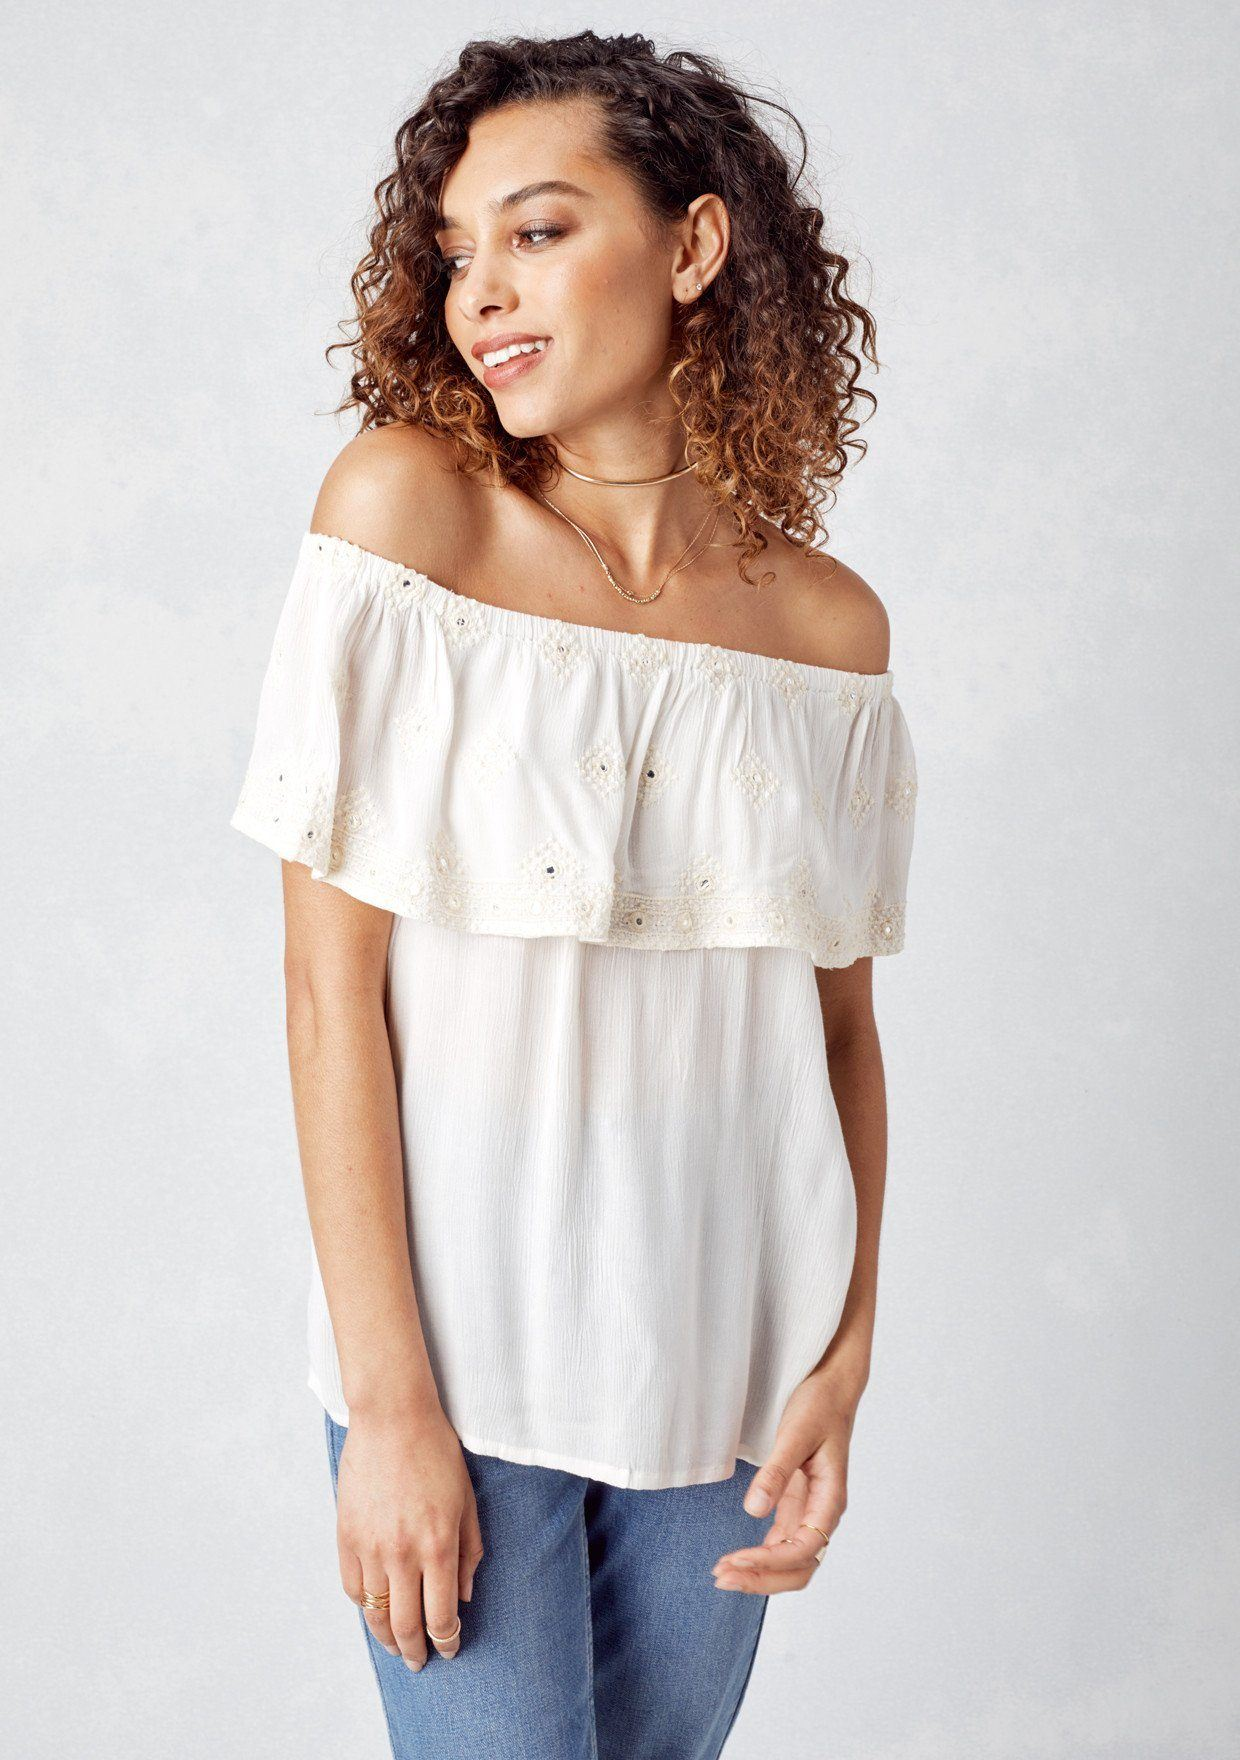 be2117a7a9 Lovestitch -Off-the-Shoulder-Eyelet-Top-with-Mirrored-Detail-1.jpg?v=1558722504